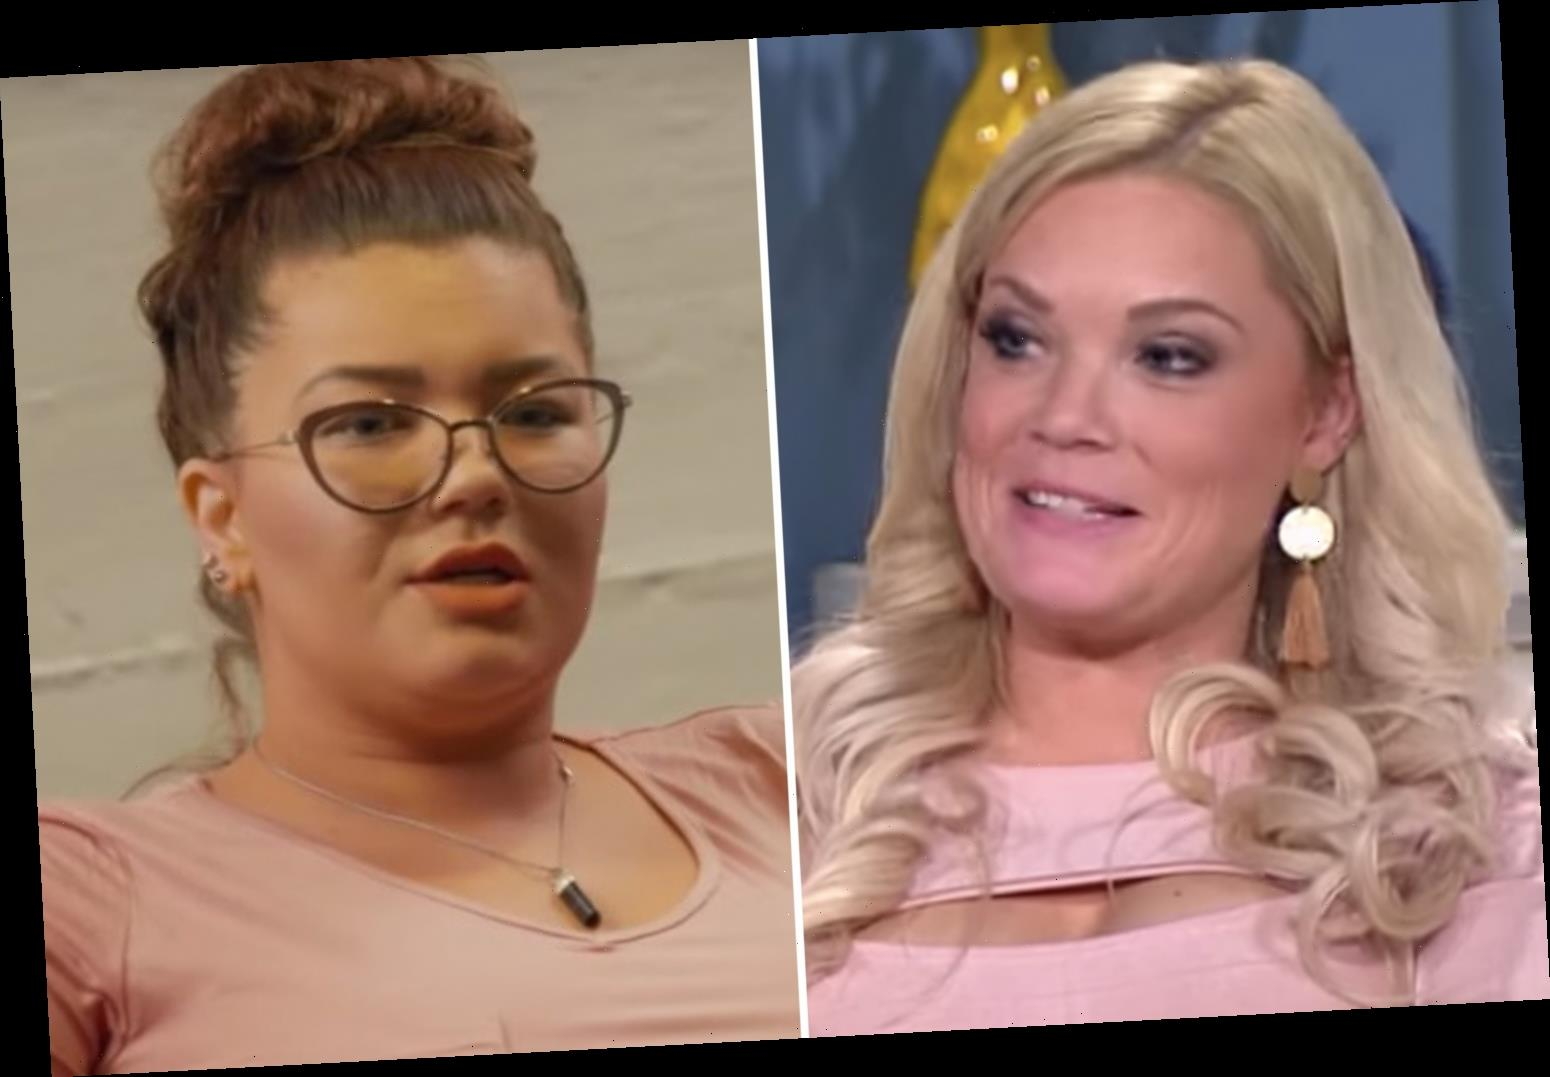 Teen Mom Amber Portwood slams 'irrelevant' 90 Day Fiance star Ashley Martson for saying her relationships are 'messy' – The Sun